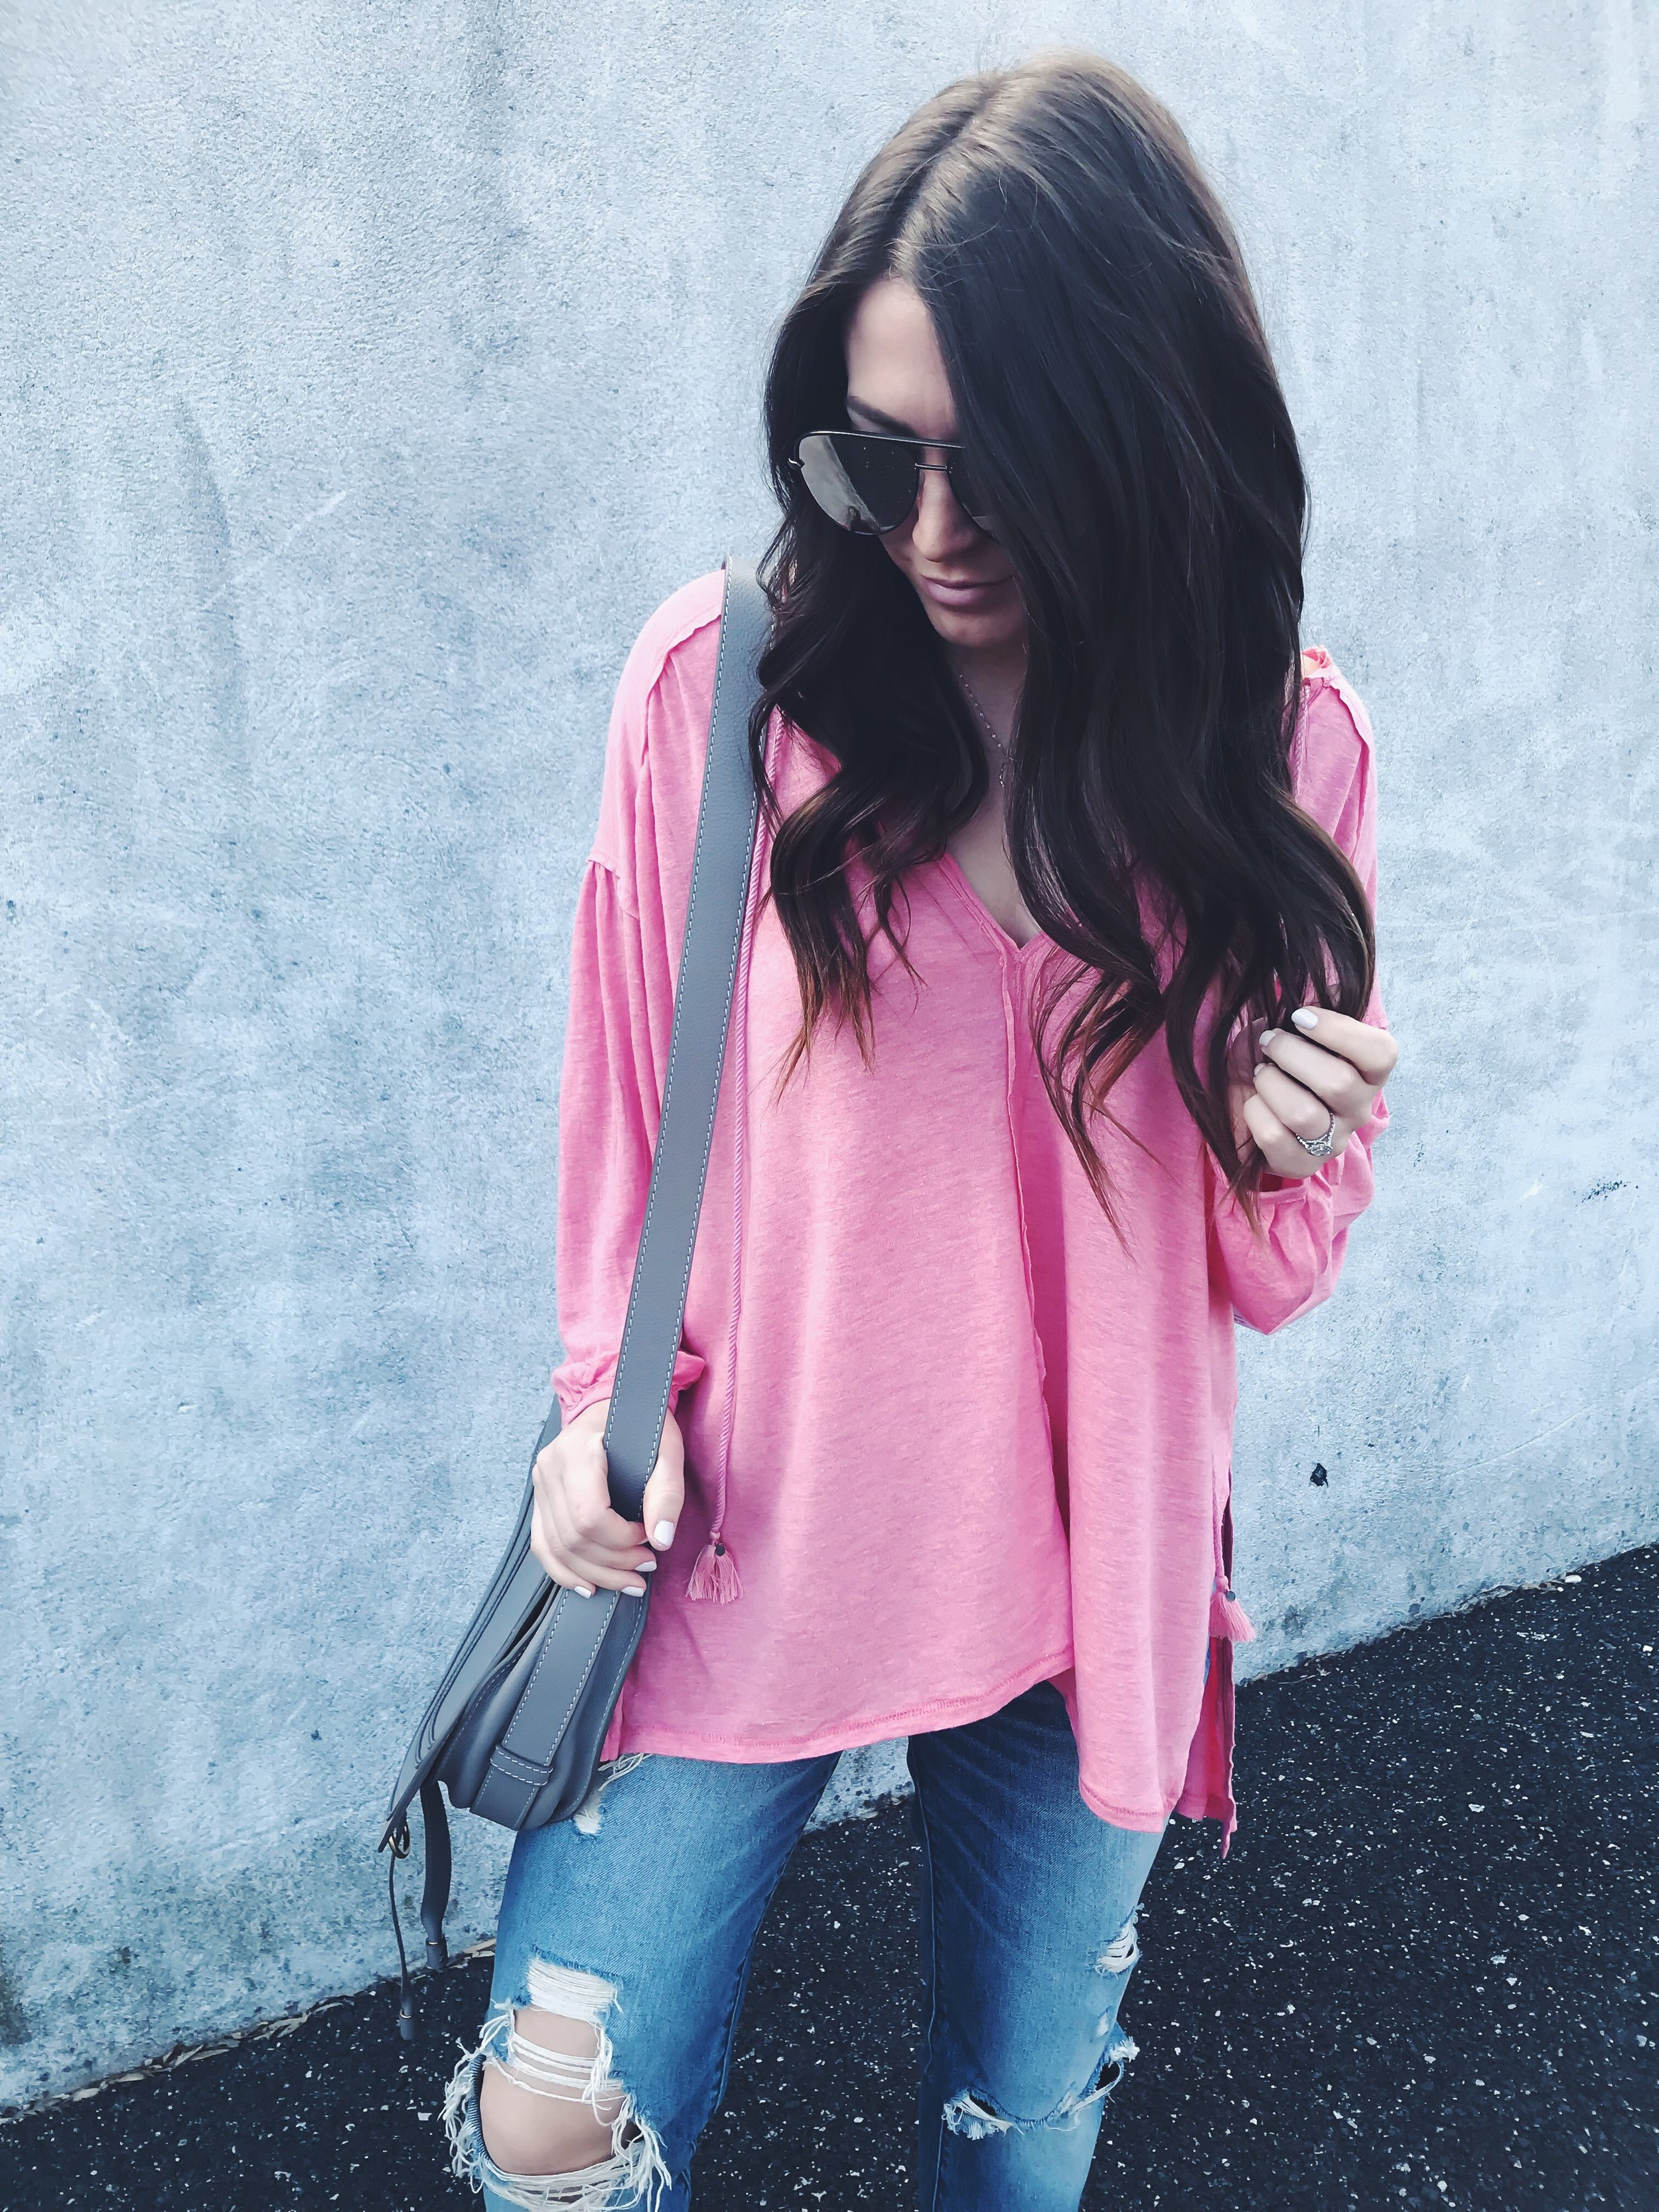 Instagram Round Up + Current Sales | Pine Barren Beauty | outfit of the day, outfit details, spring outfit, free people